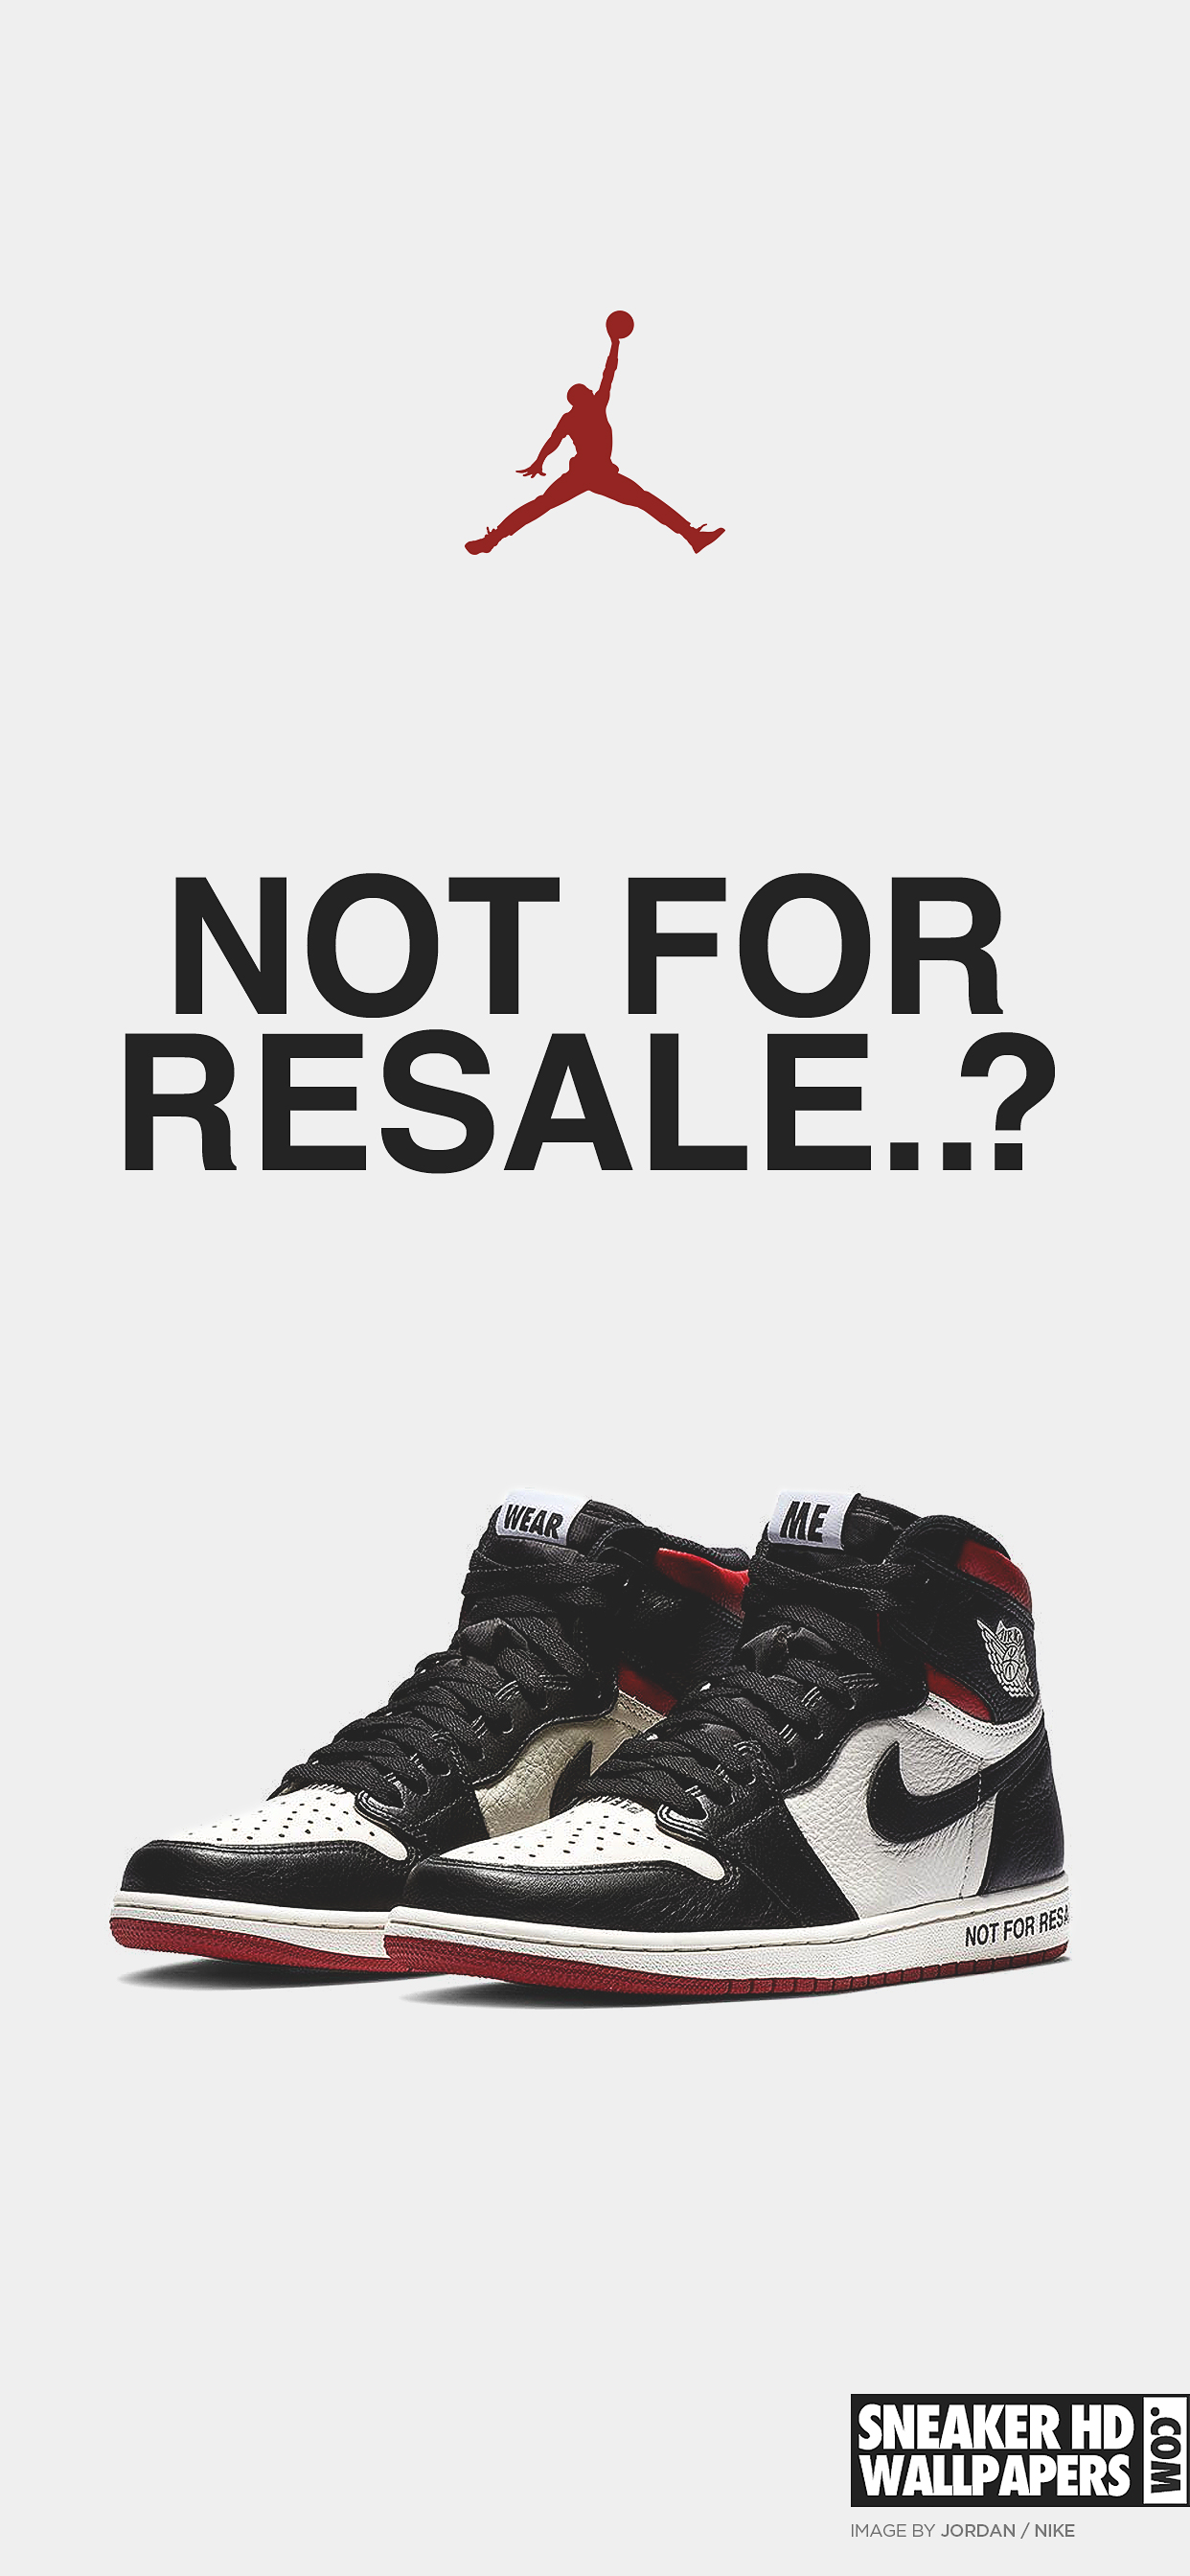 SneakerHDWallpaperscom Your favorite sneakers in HD and mobile 1242x2688